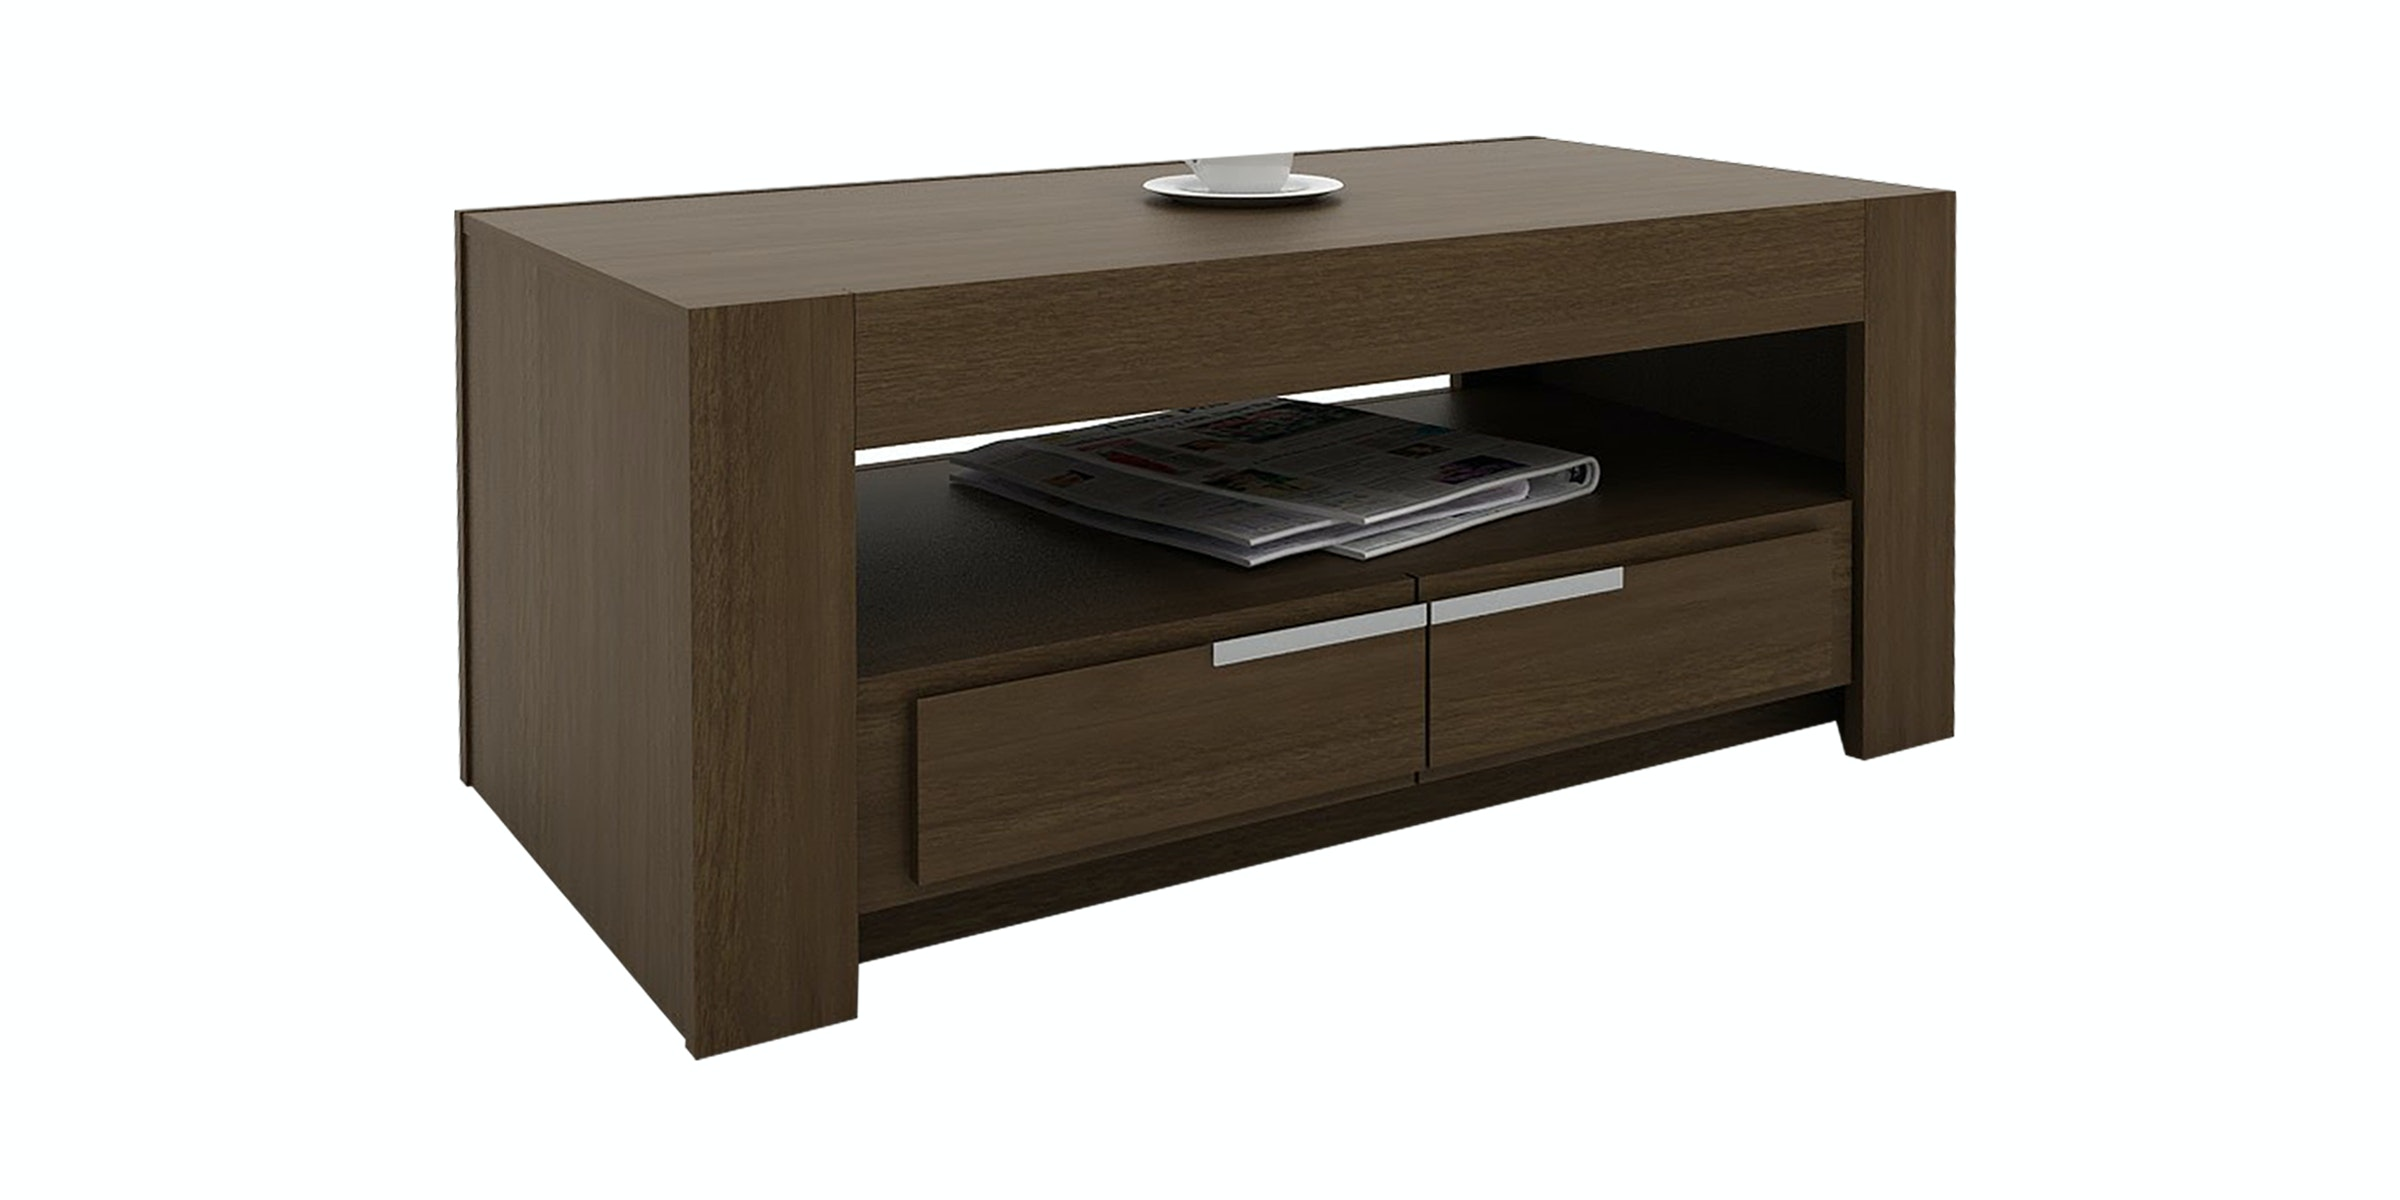 Pro Design Oregon Meja Tamu - Springfield Walnut